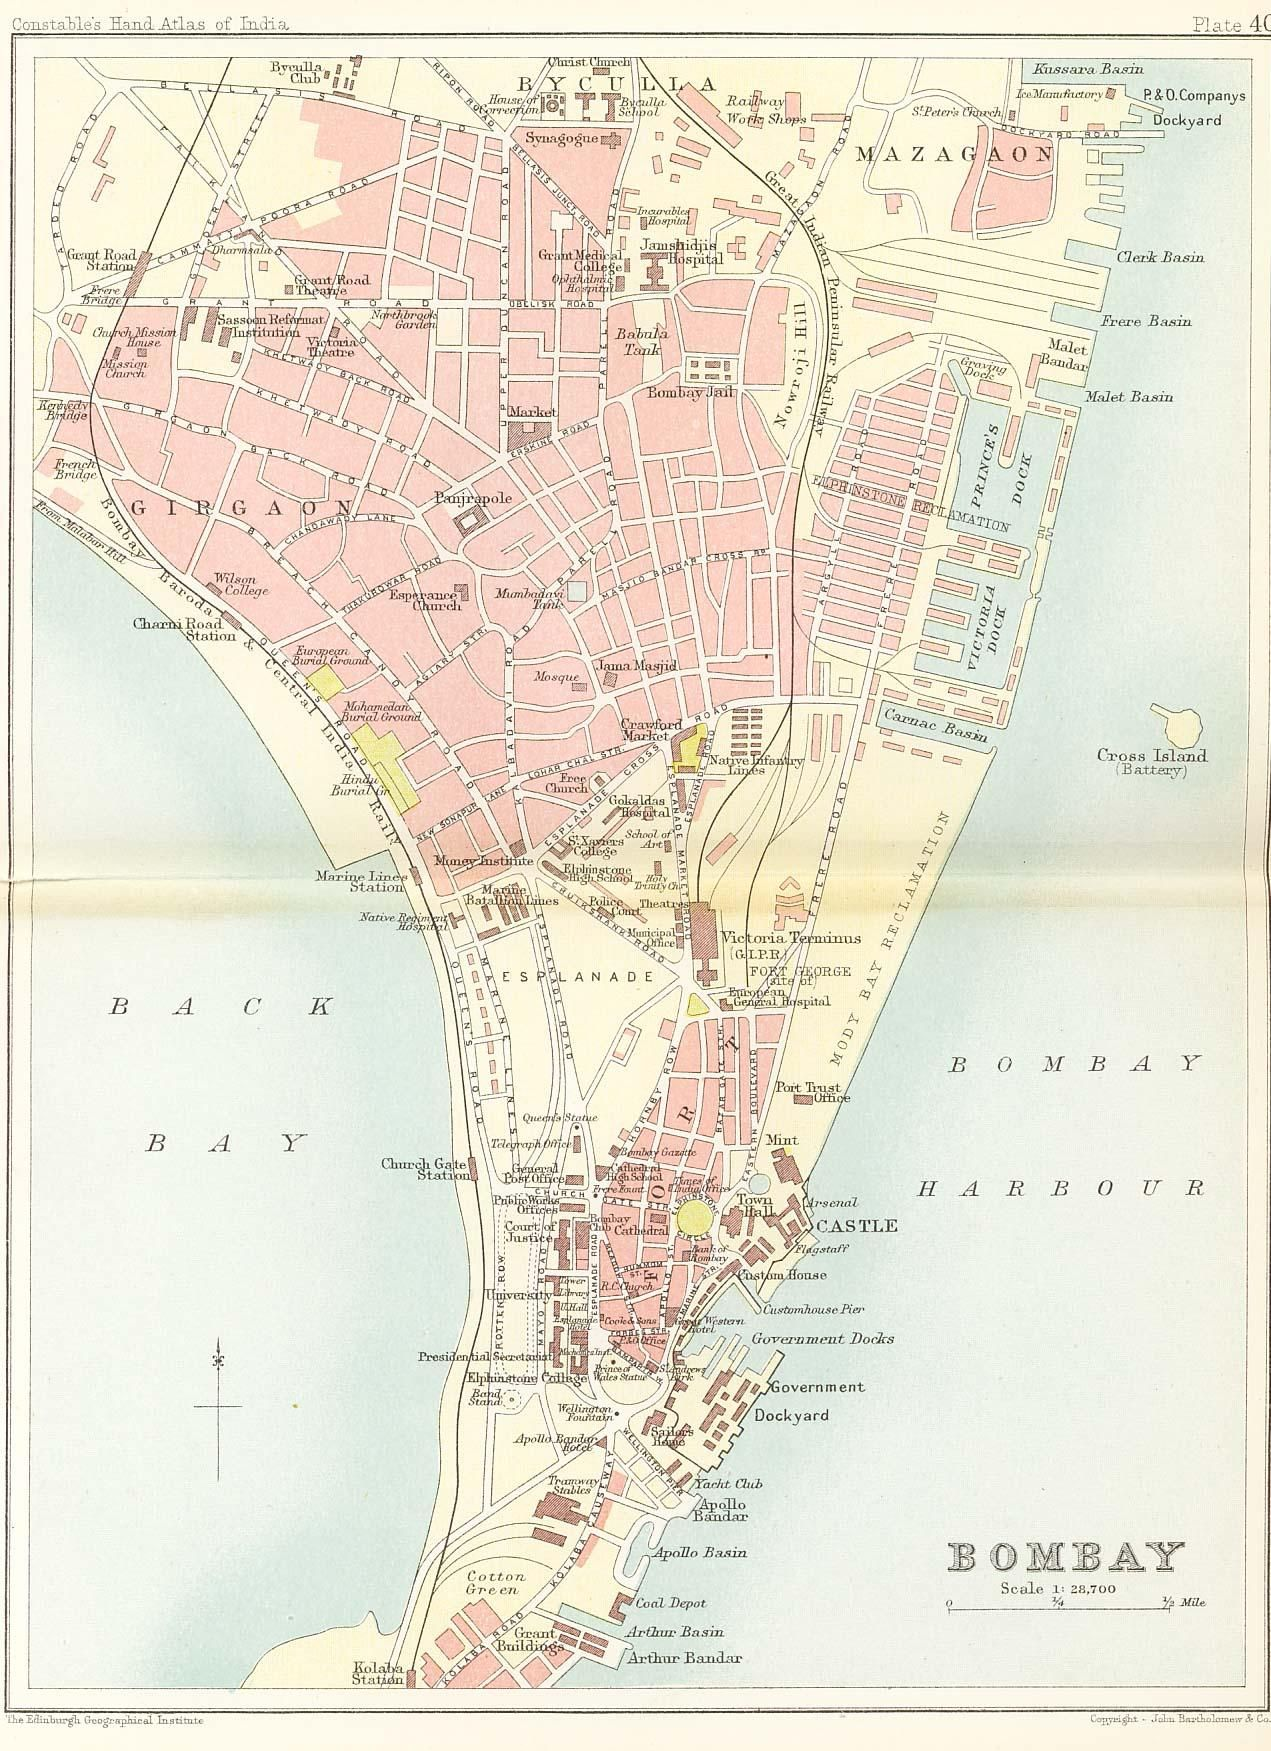 Bombay Docks 19th Century Google Search 2 Discovery Of Desire